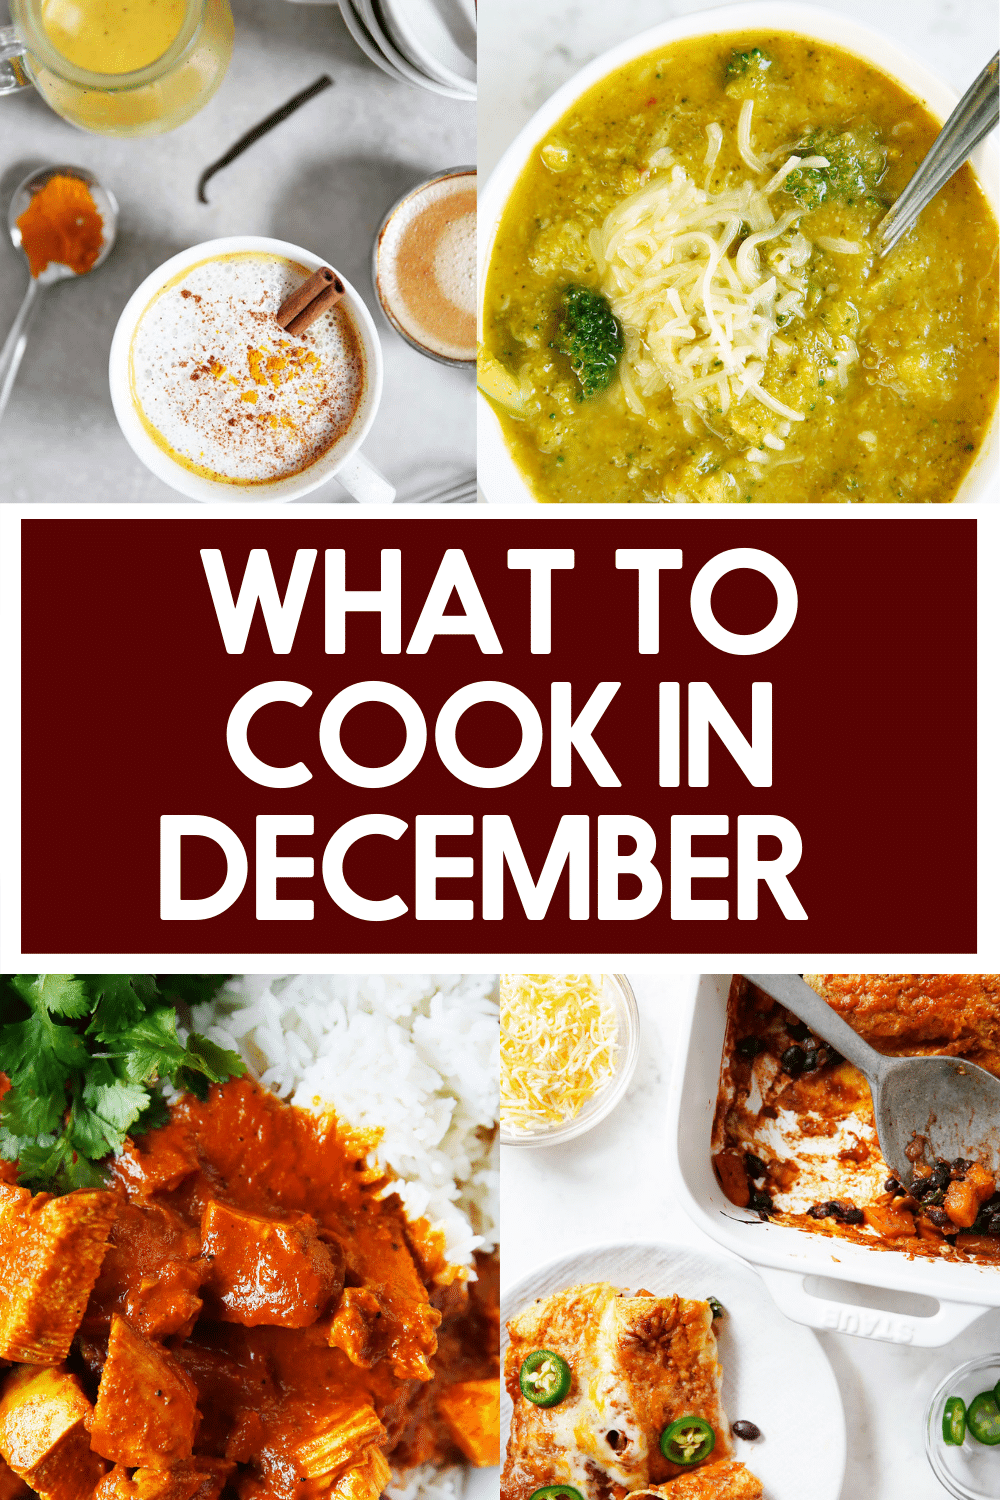 What to cook in December.